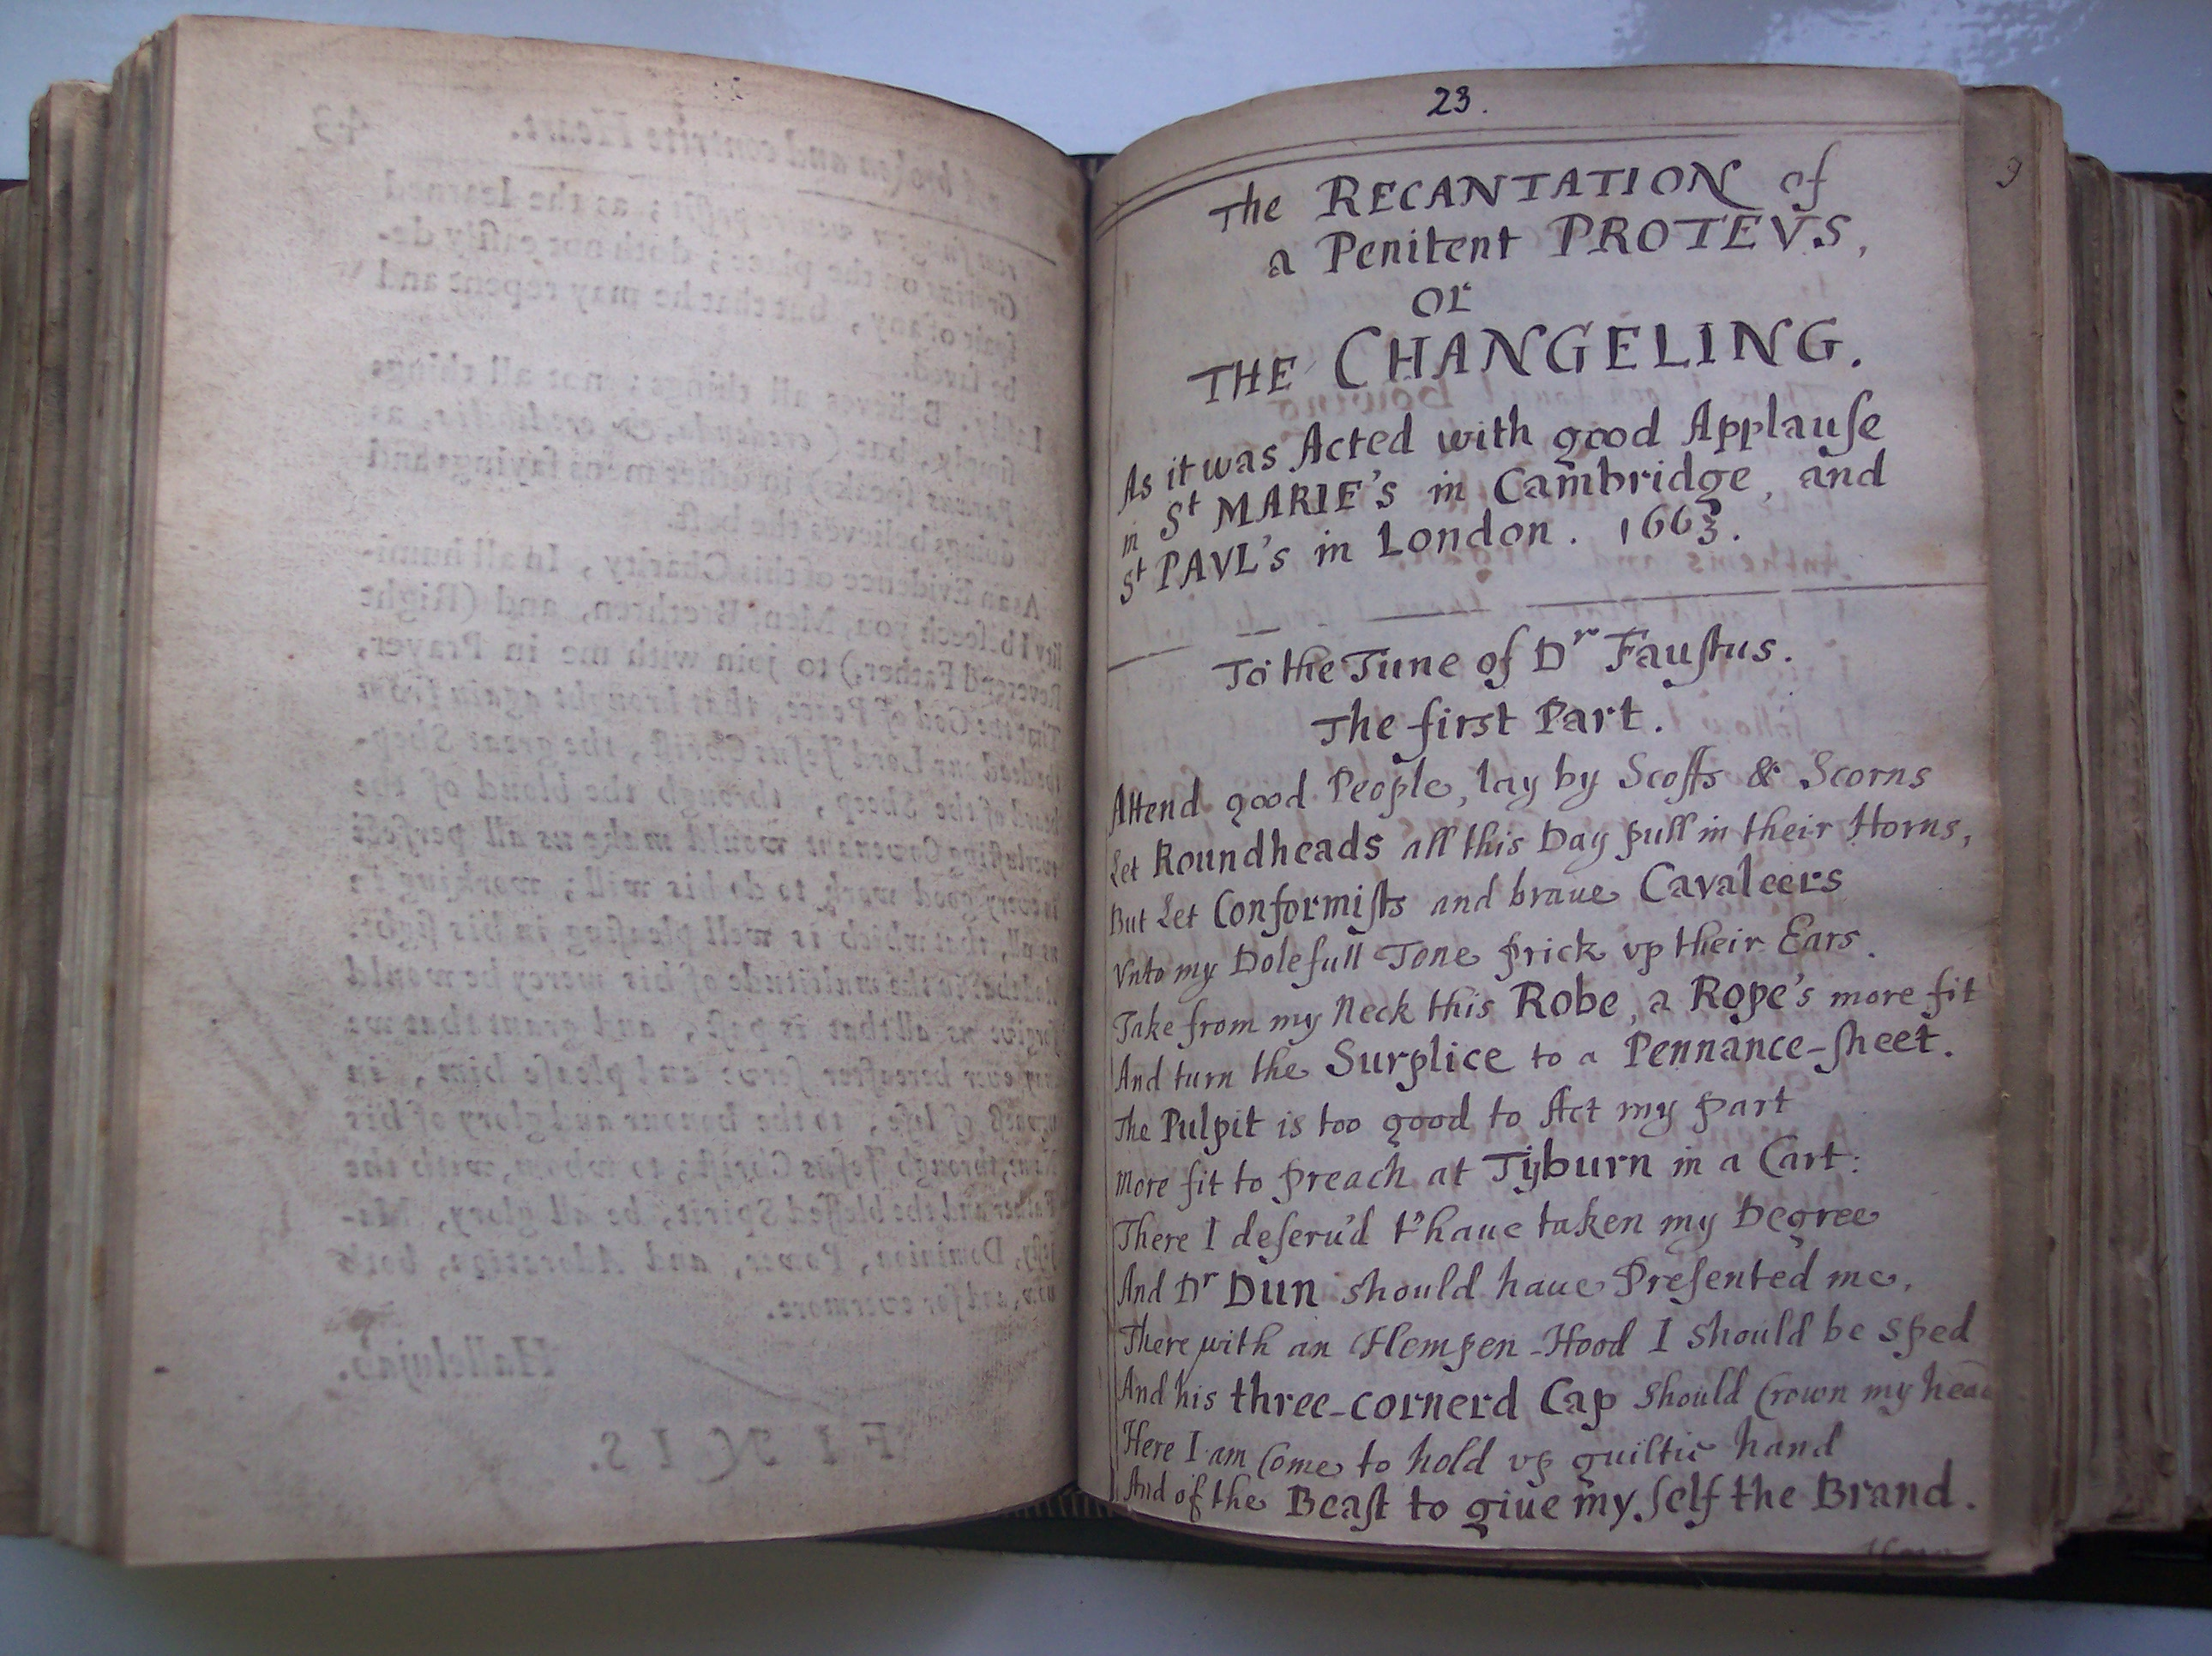 BT3.63.9(23) Robert Wild's The recantation of a penitent Proteus, 1663 (manuscript bound with 38 printed works; printed versions of this appeared also in 1663)